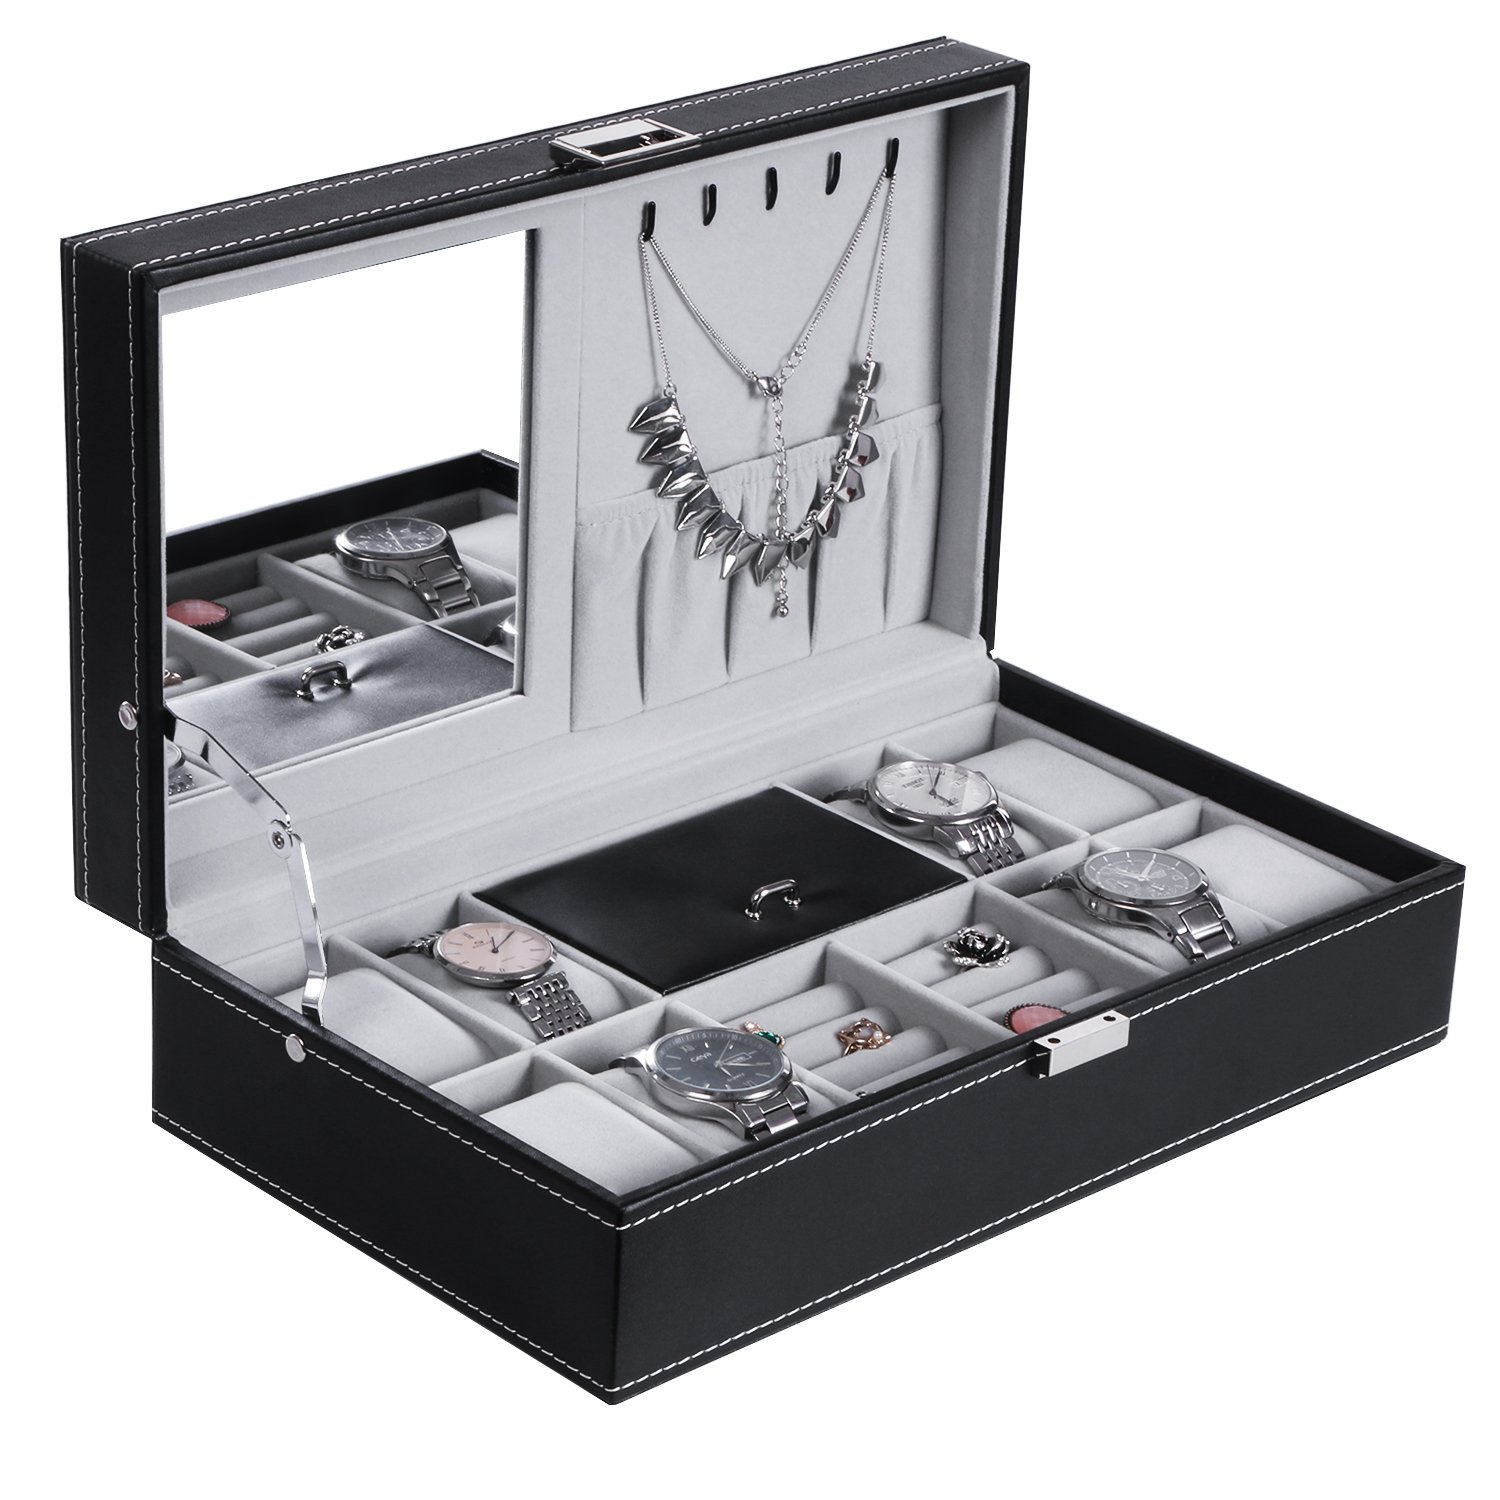 BEWISHOME Watch Jewelry Box 8 Watch Organizer 3 Grids for Jewelry Display Storage Men Woman Watch Case with Mirror and Metal Hinge Black PU Leather SSH05B